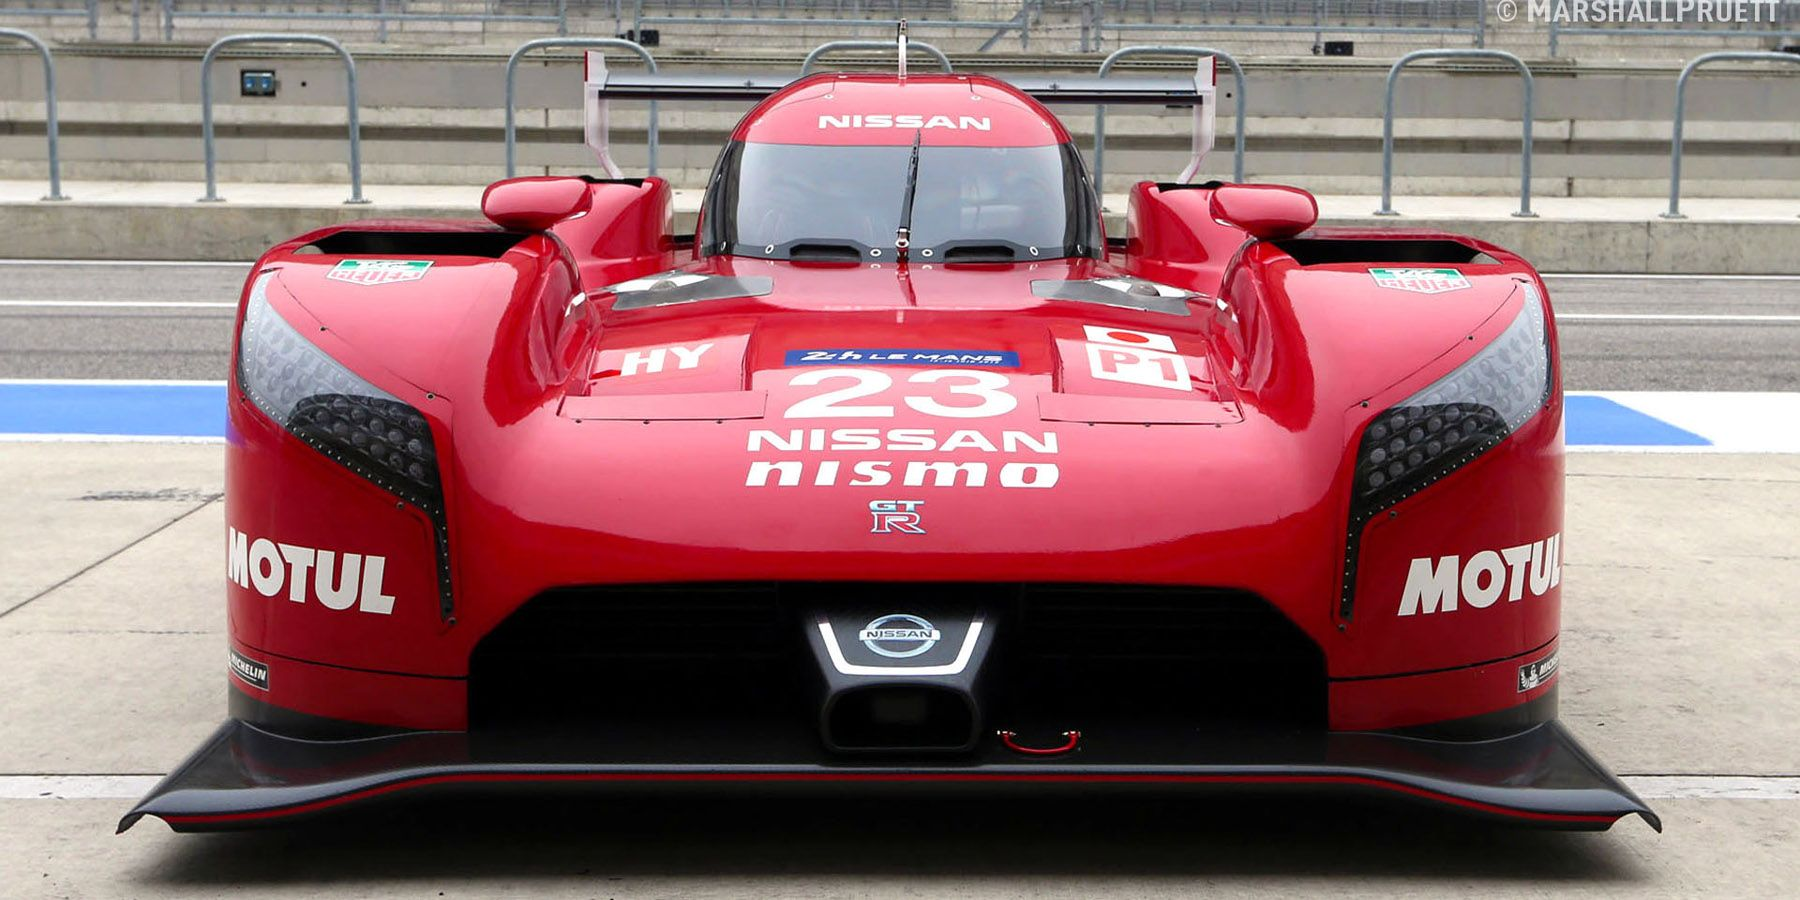 Nissan GT-R LM NISMO: A deep dive with Ben Bowlby